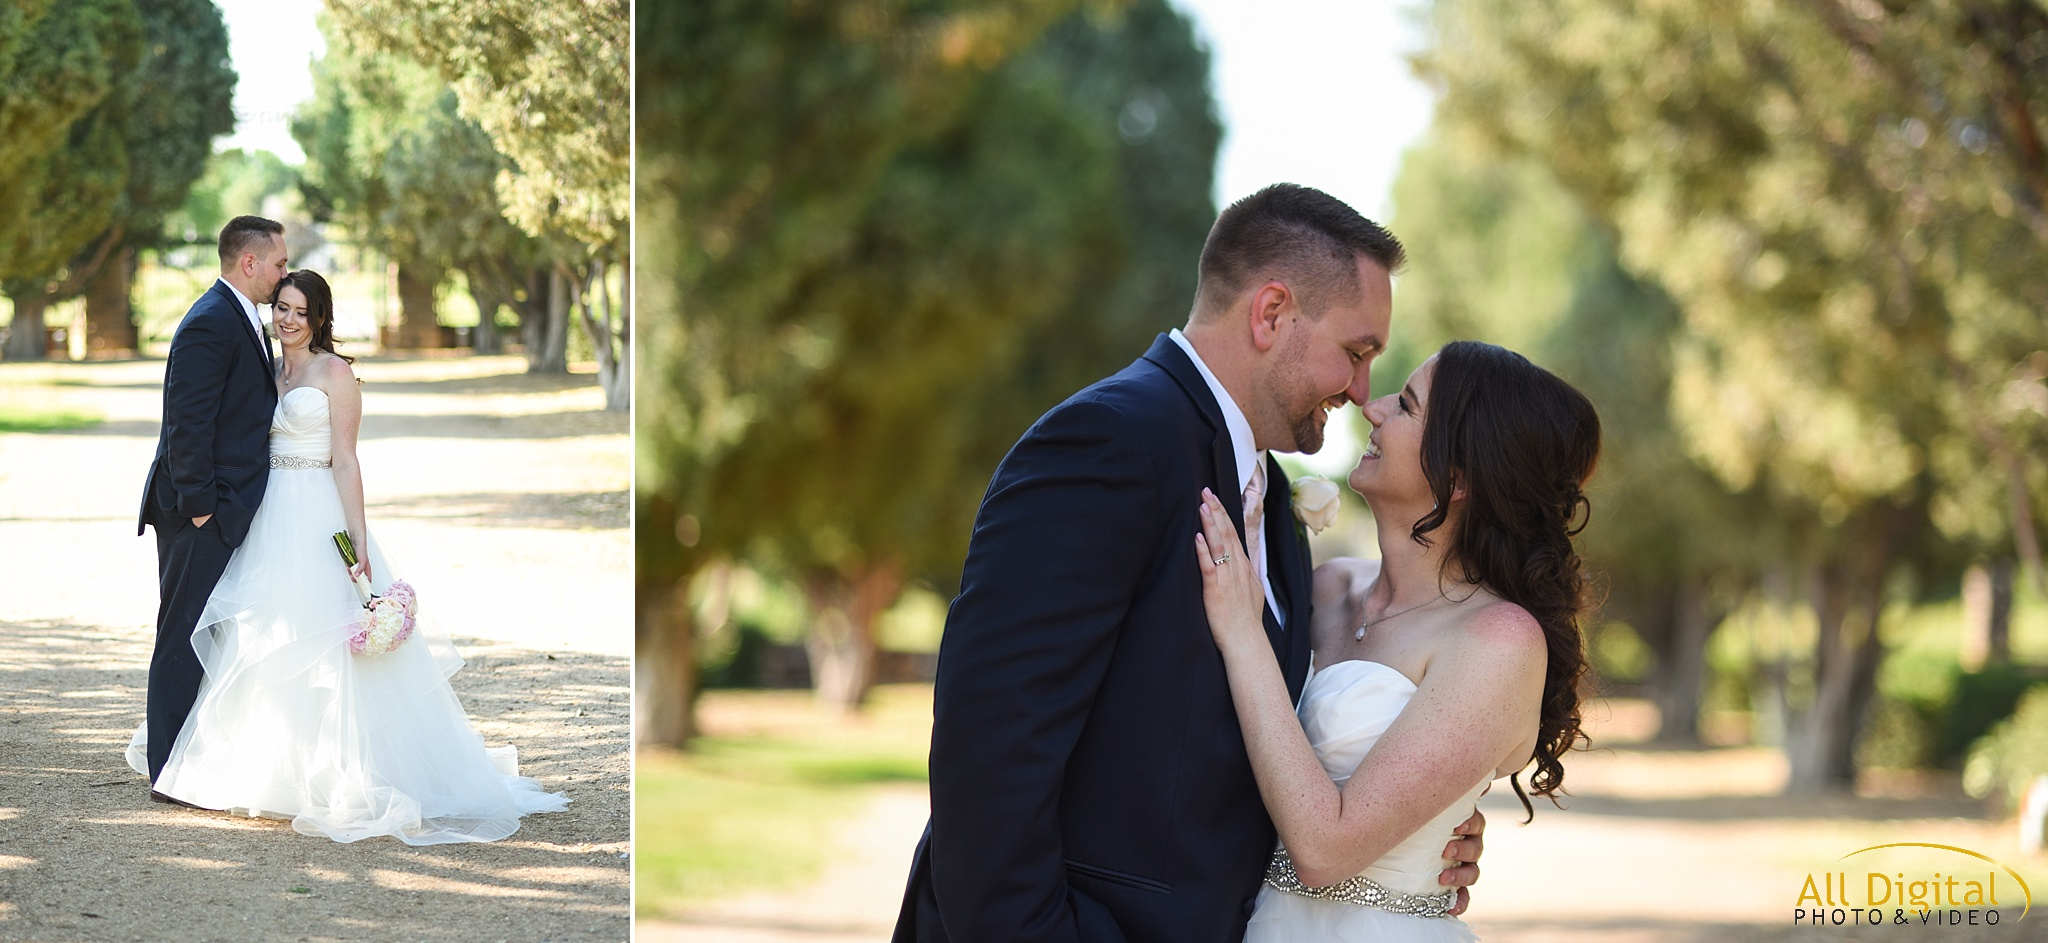 Bride & Groom Portraits at Highlands Ranch Mansion